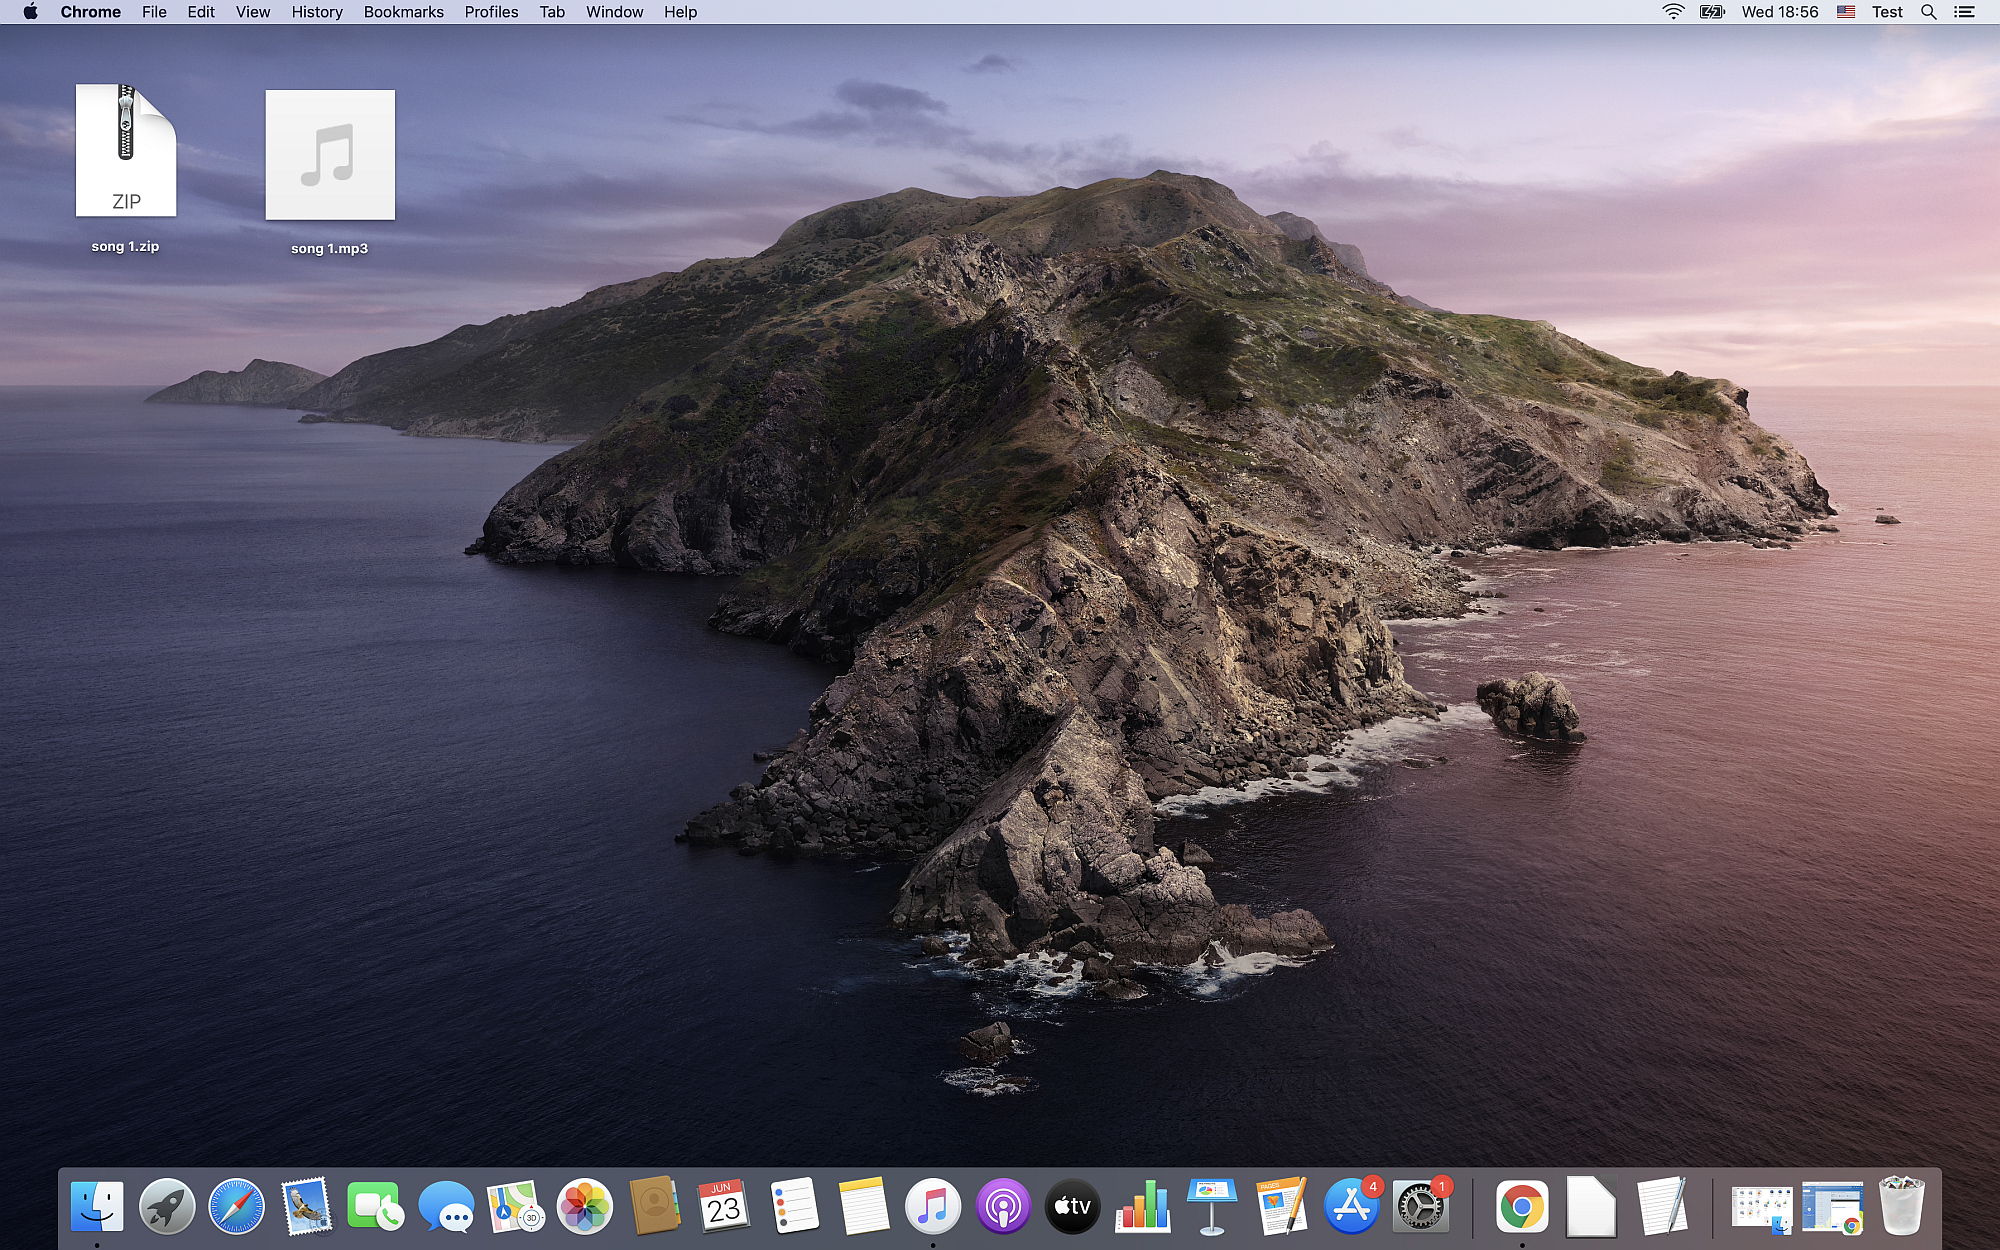 Best ZIP file converter to MP3 on macOS Catalina